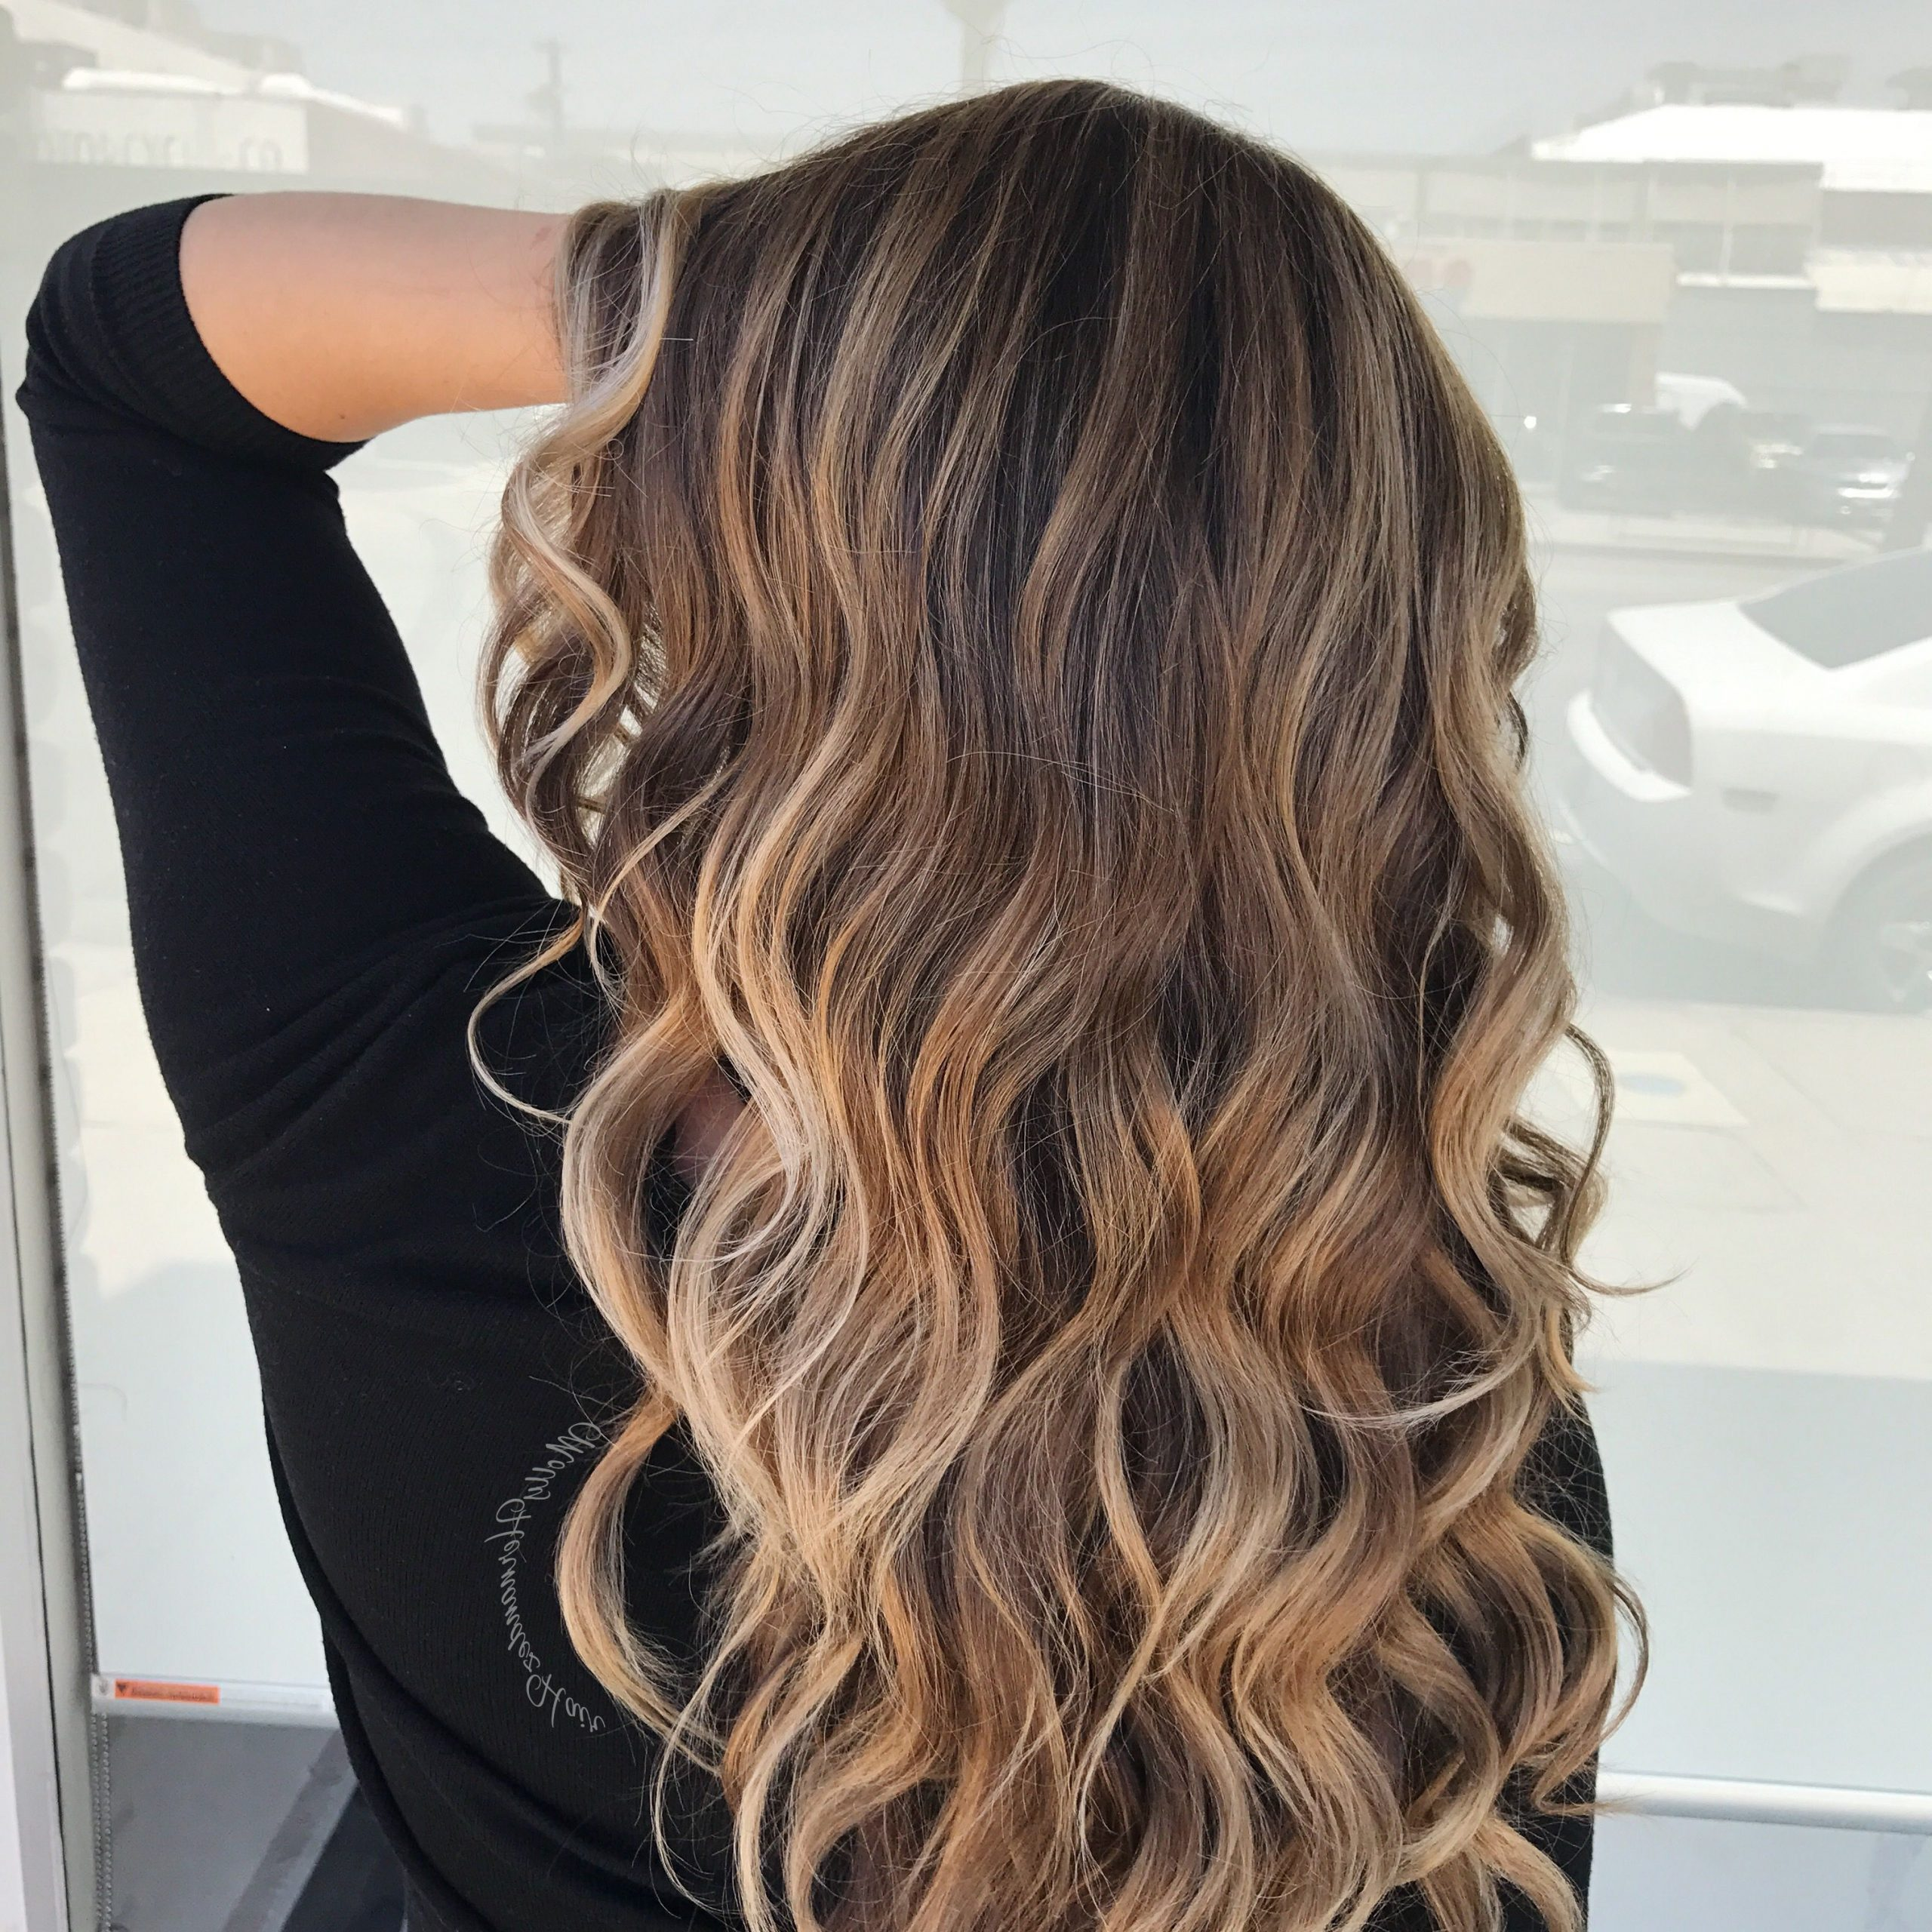 Blonde Balayage Highlights On Brown Hair, Bronde Ombré Pertaining To Brown Blonde Balayage Hairstyles (View 10 of 20)